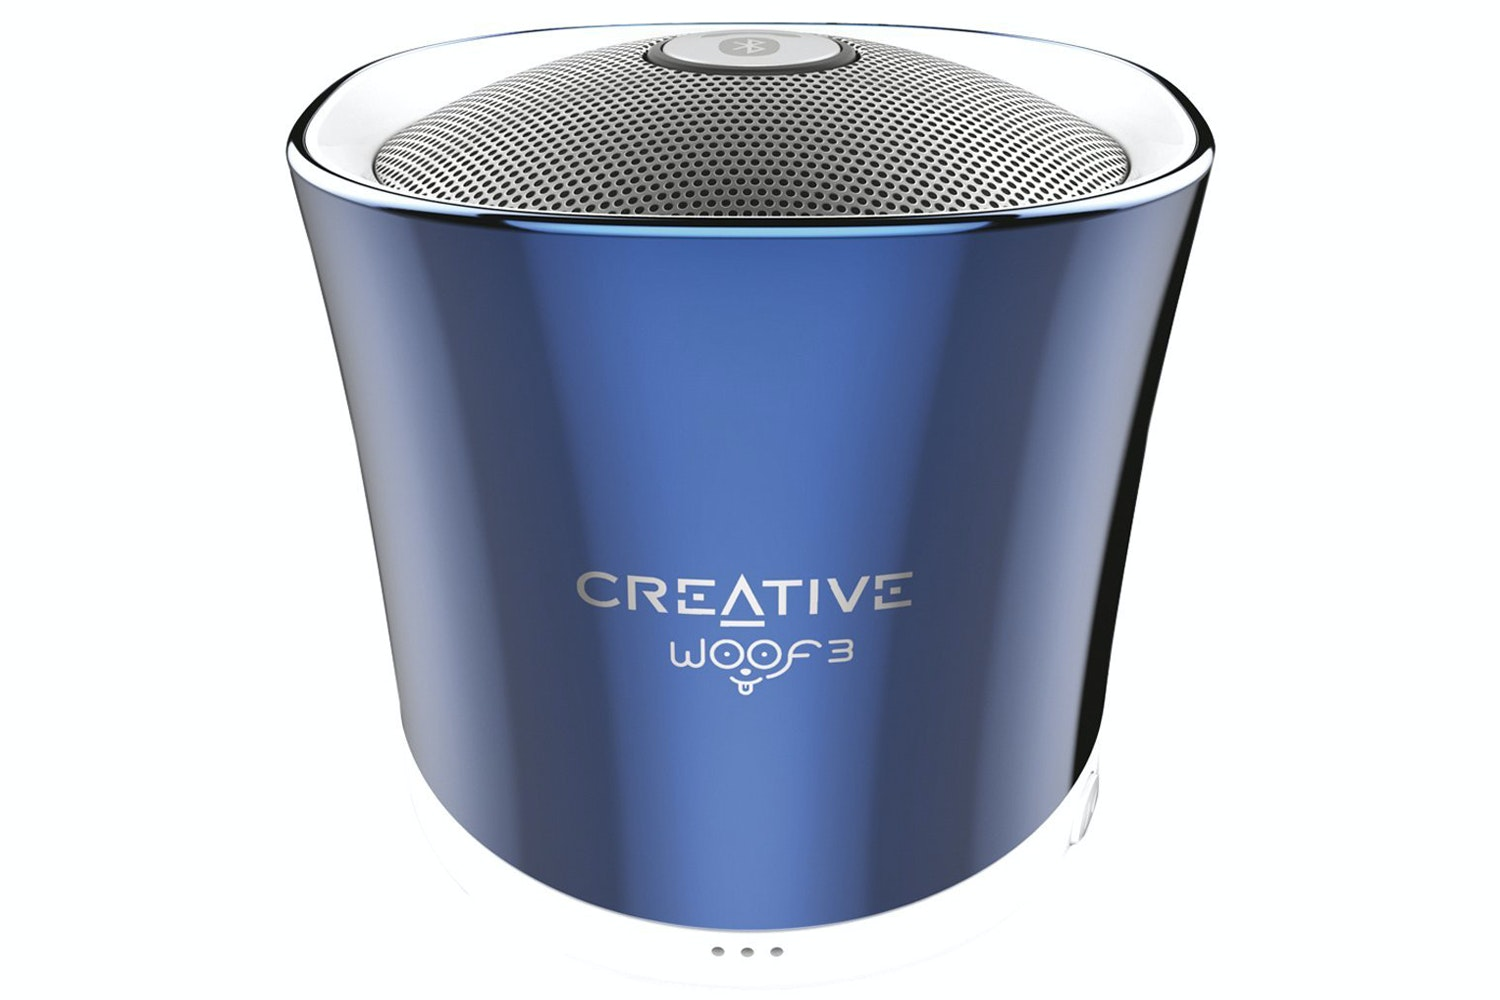 Creative Woof 3 Portable Wireless Bluetooth Speaker | Blue